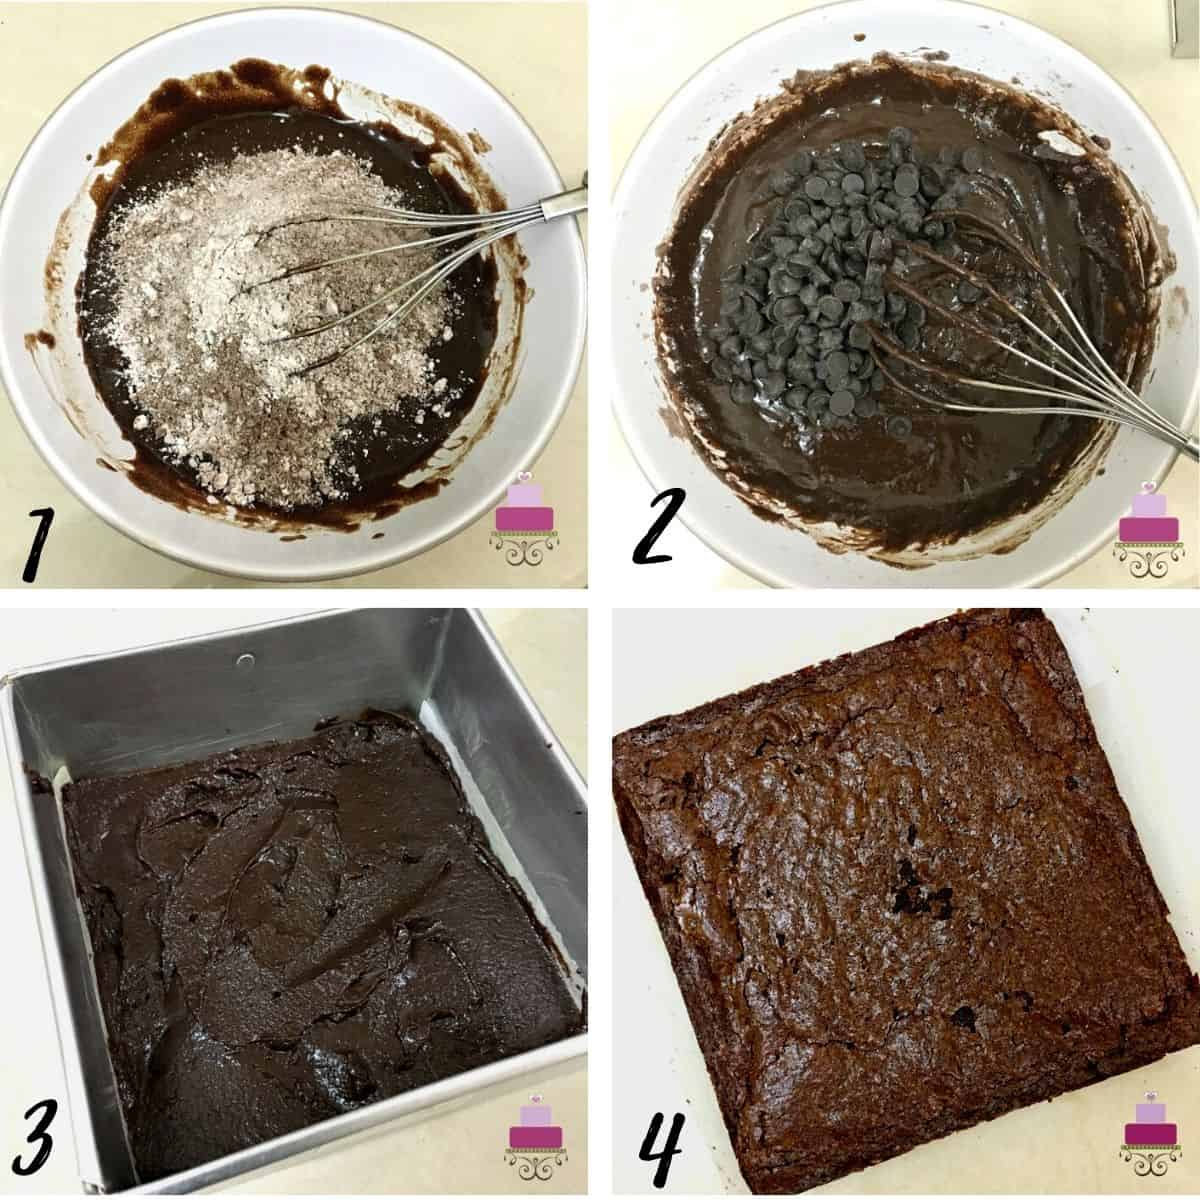 A poster of 4 images showing how to mix flour and chocolate chips into brownie batter, unbaked brownie in a square tin and a baked brownie.